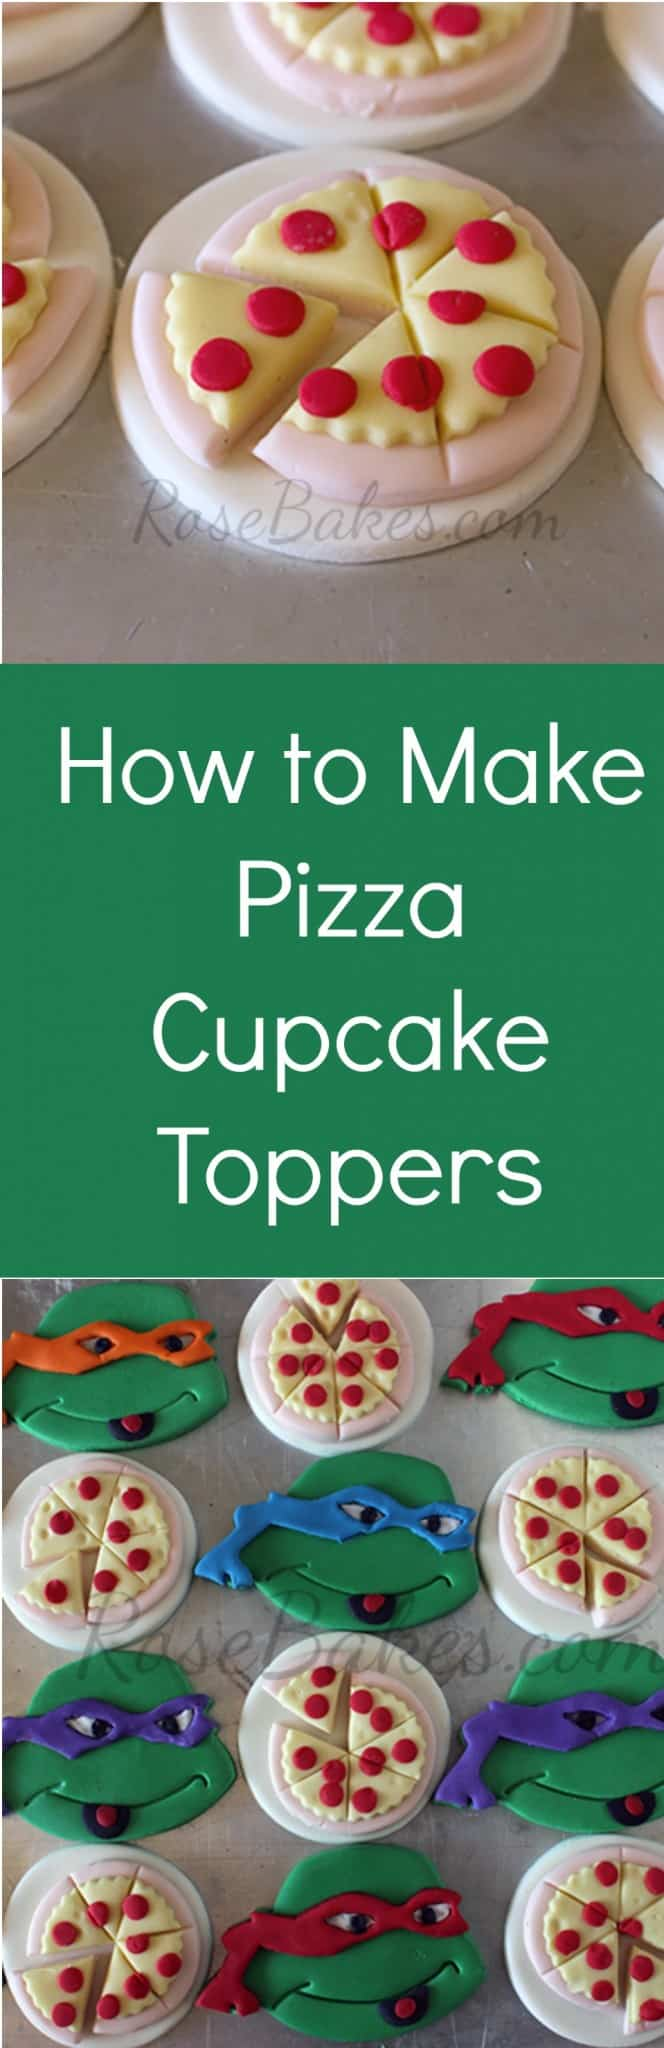 How to Make Teenage Mutant Ninja Turtles Pizza Cupcake Toppers